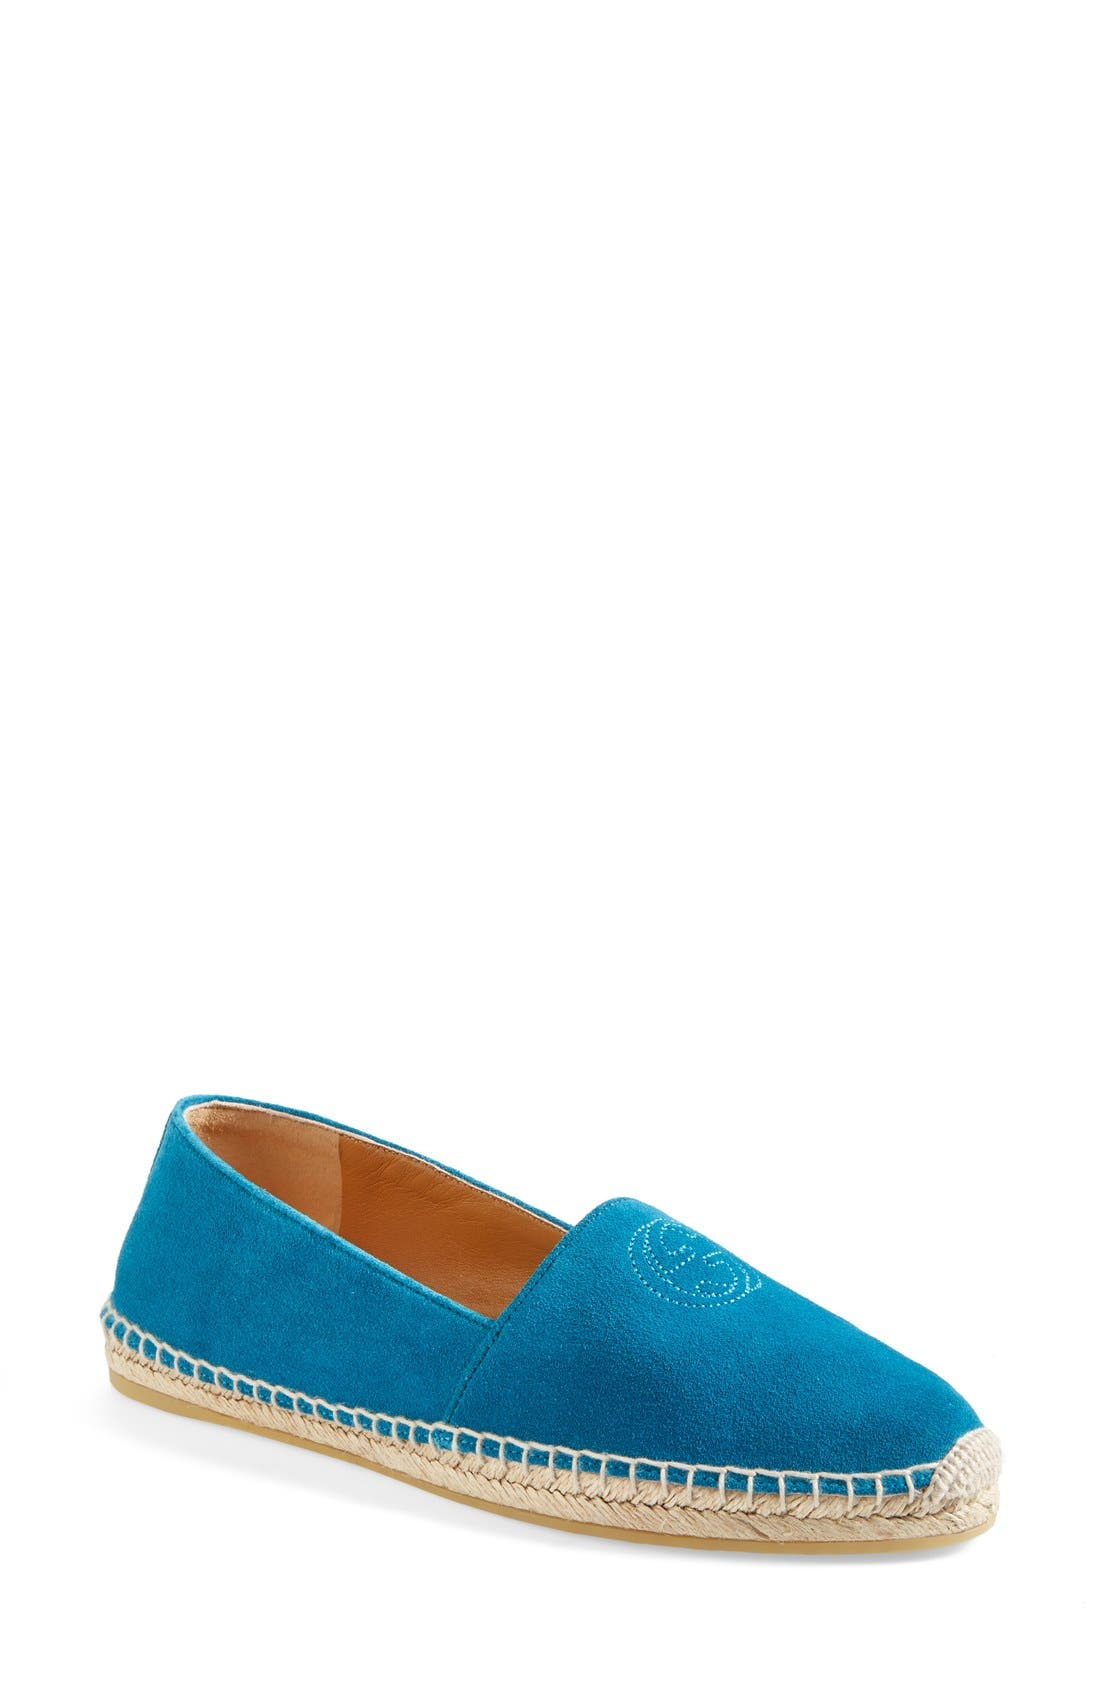 Alternate Image 1 Selected - Gucci 'Pilar' Espadrille Flat (Women)